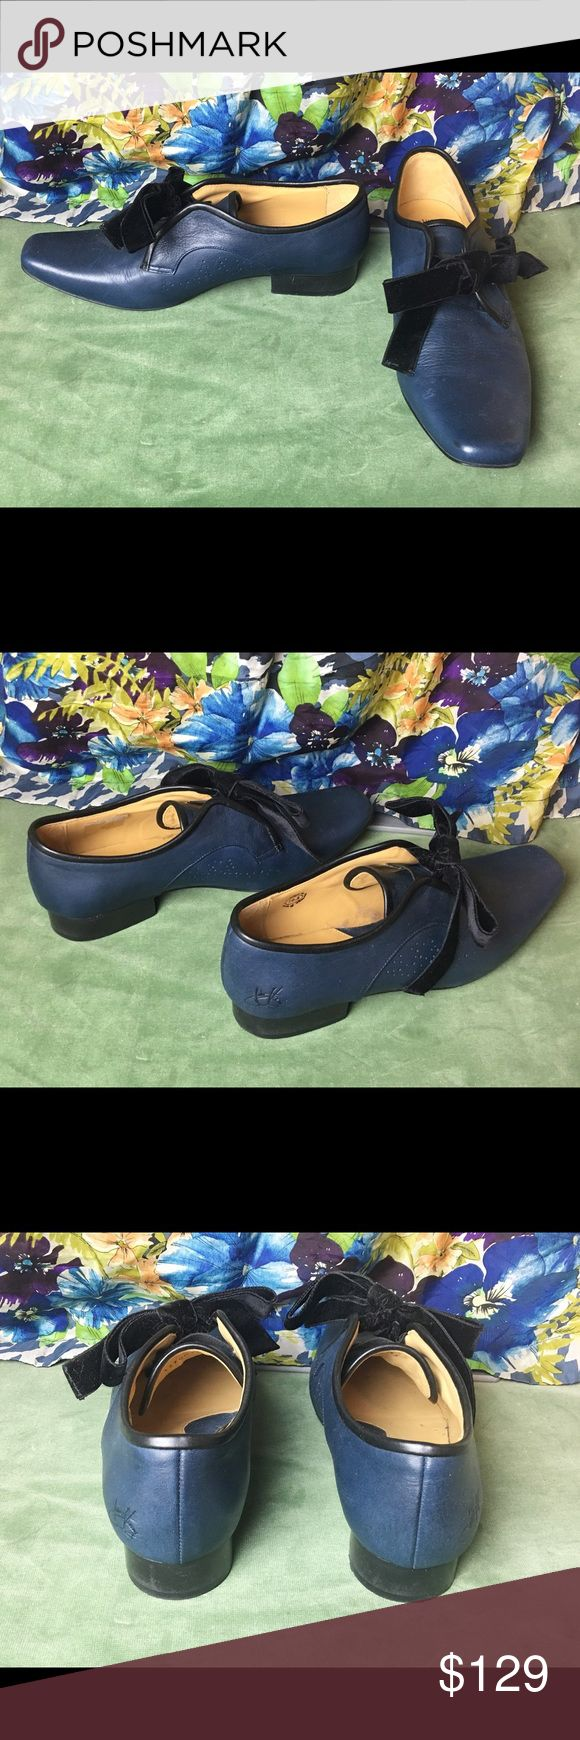 John Fluevog velvet bow tie shoes, size 10.5 🎀 Get your Downton Abbey style on with these pretty velvet bow Vogs! 🎀 Navy leather in great condition with little wear and comes in original packaging. Runs a little small. I would say this would fit a 10 or smaller. John Fluevog Shoes Flats & Loafers